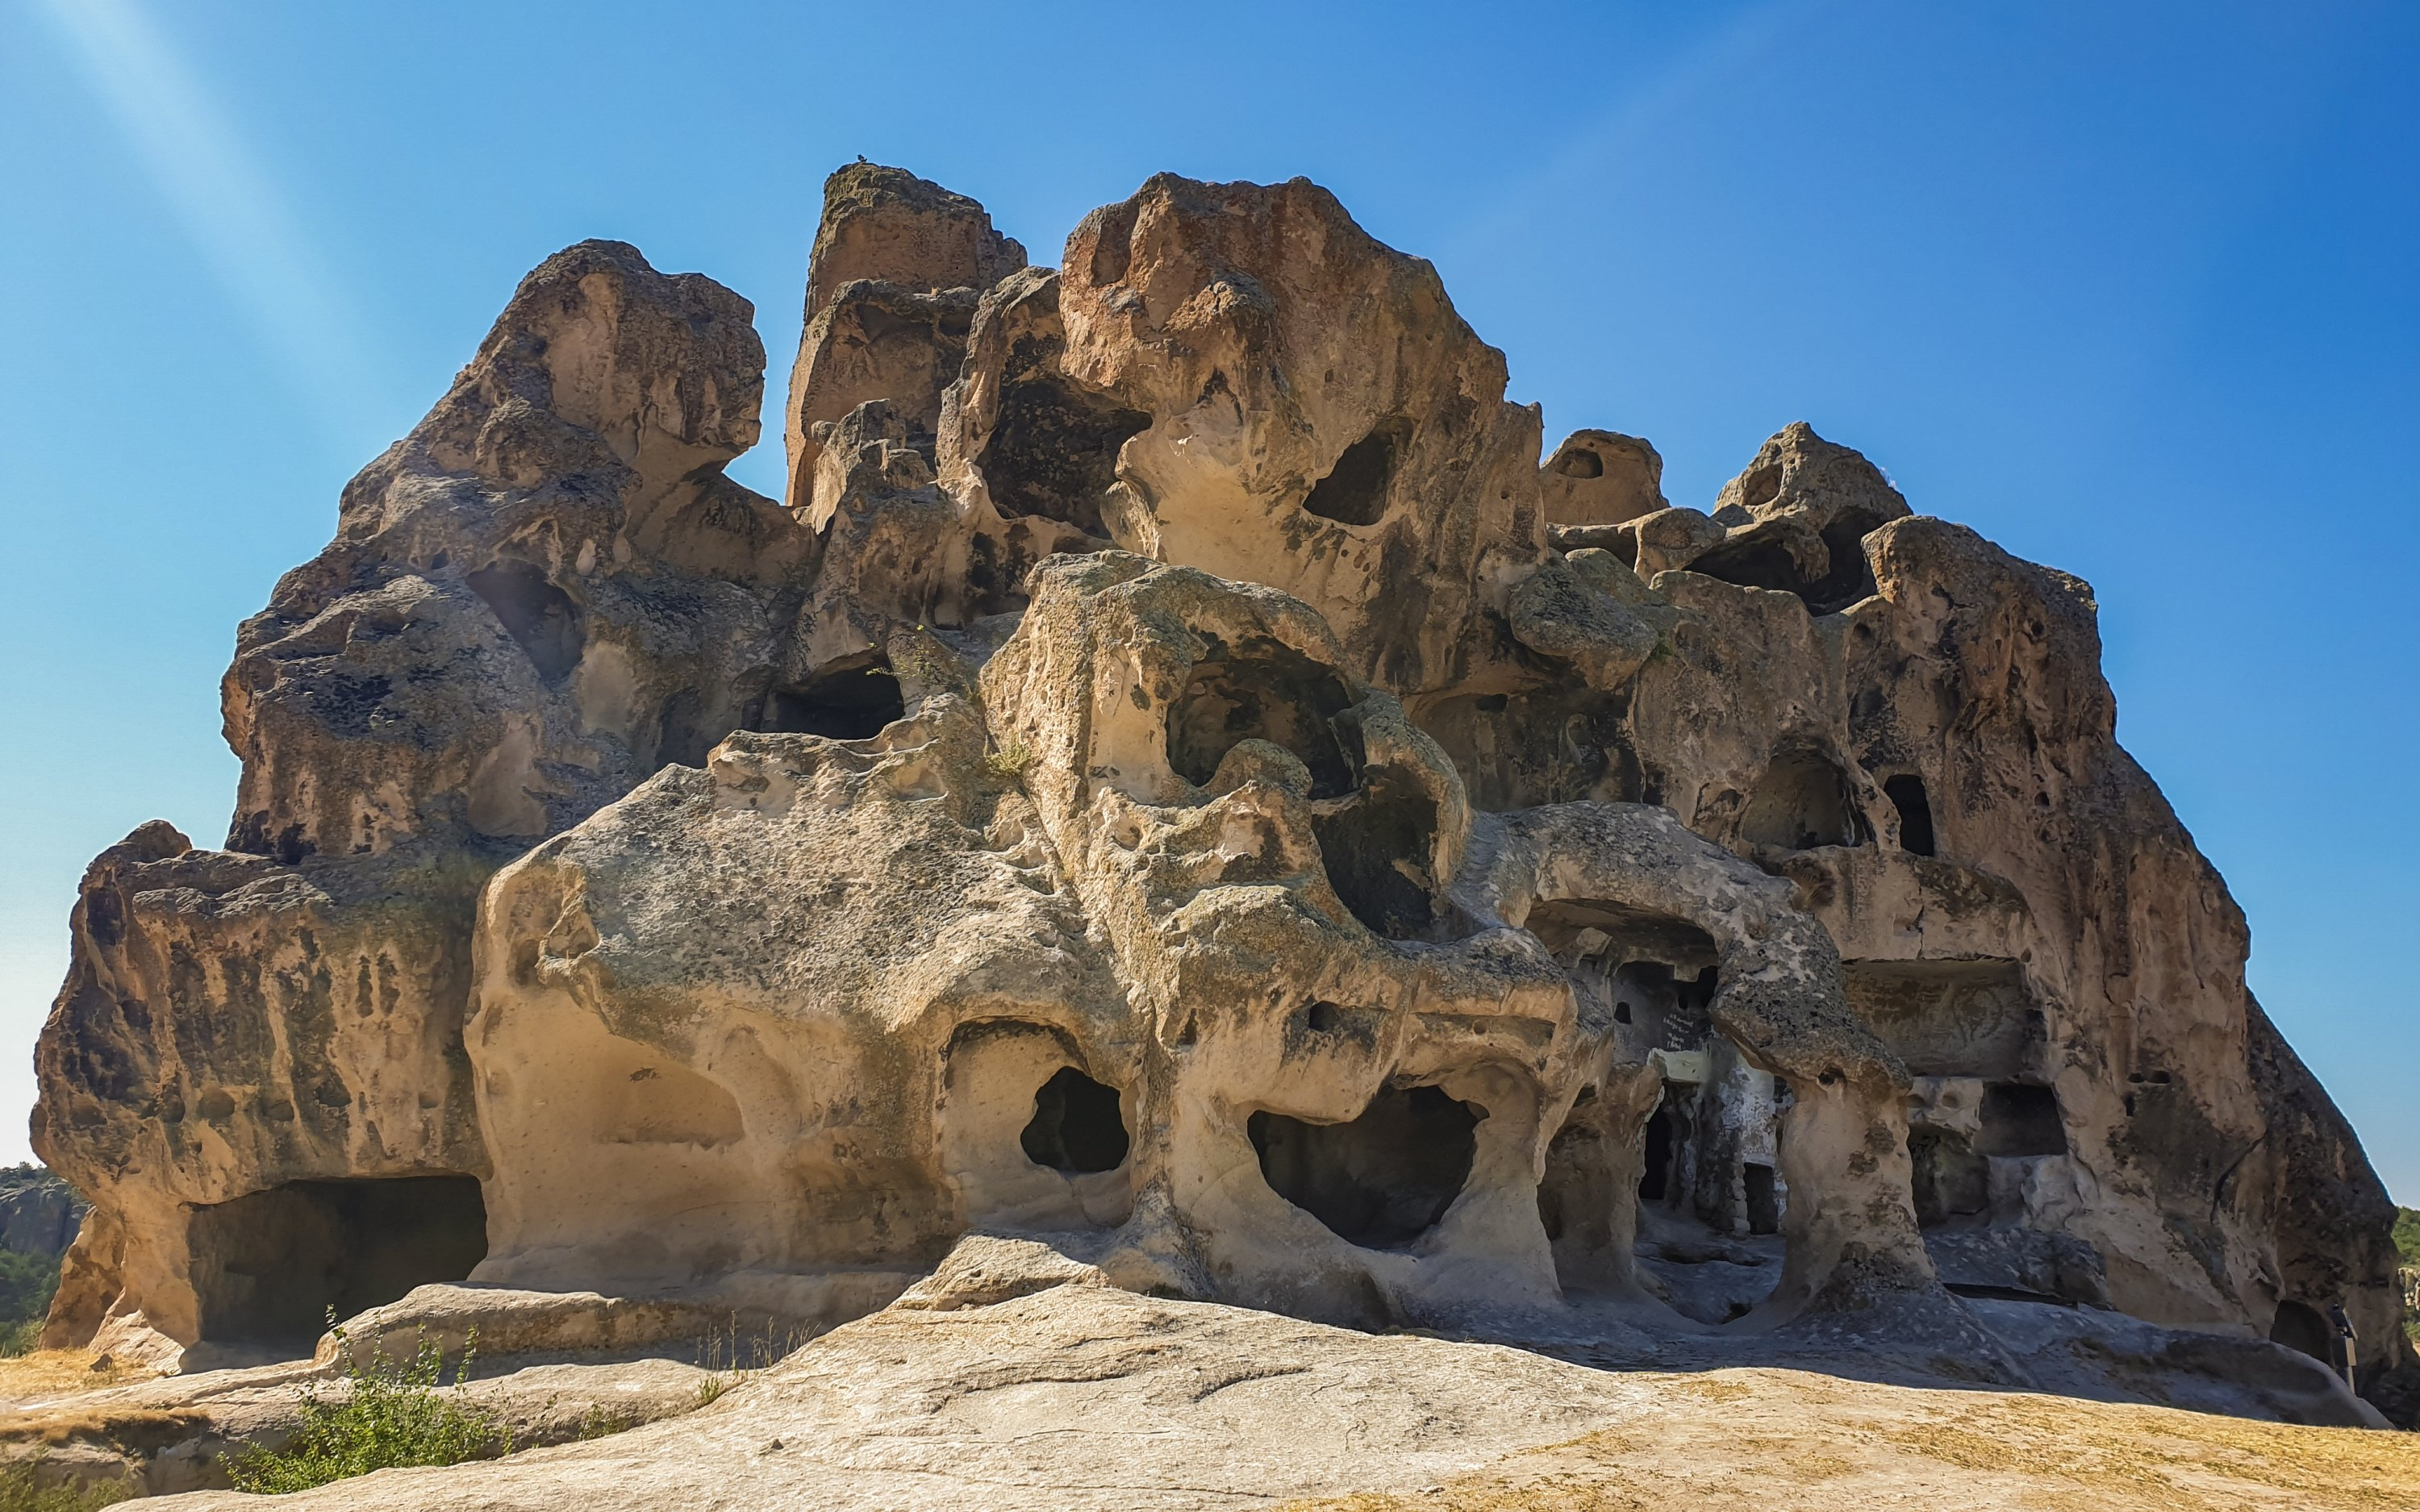 The Kırkgöz Rock in Yazılıkaya. (Photo by Argun Konuk)